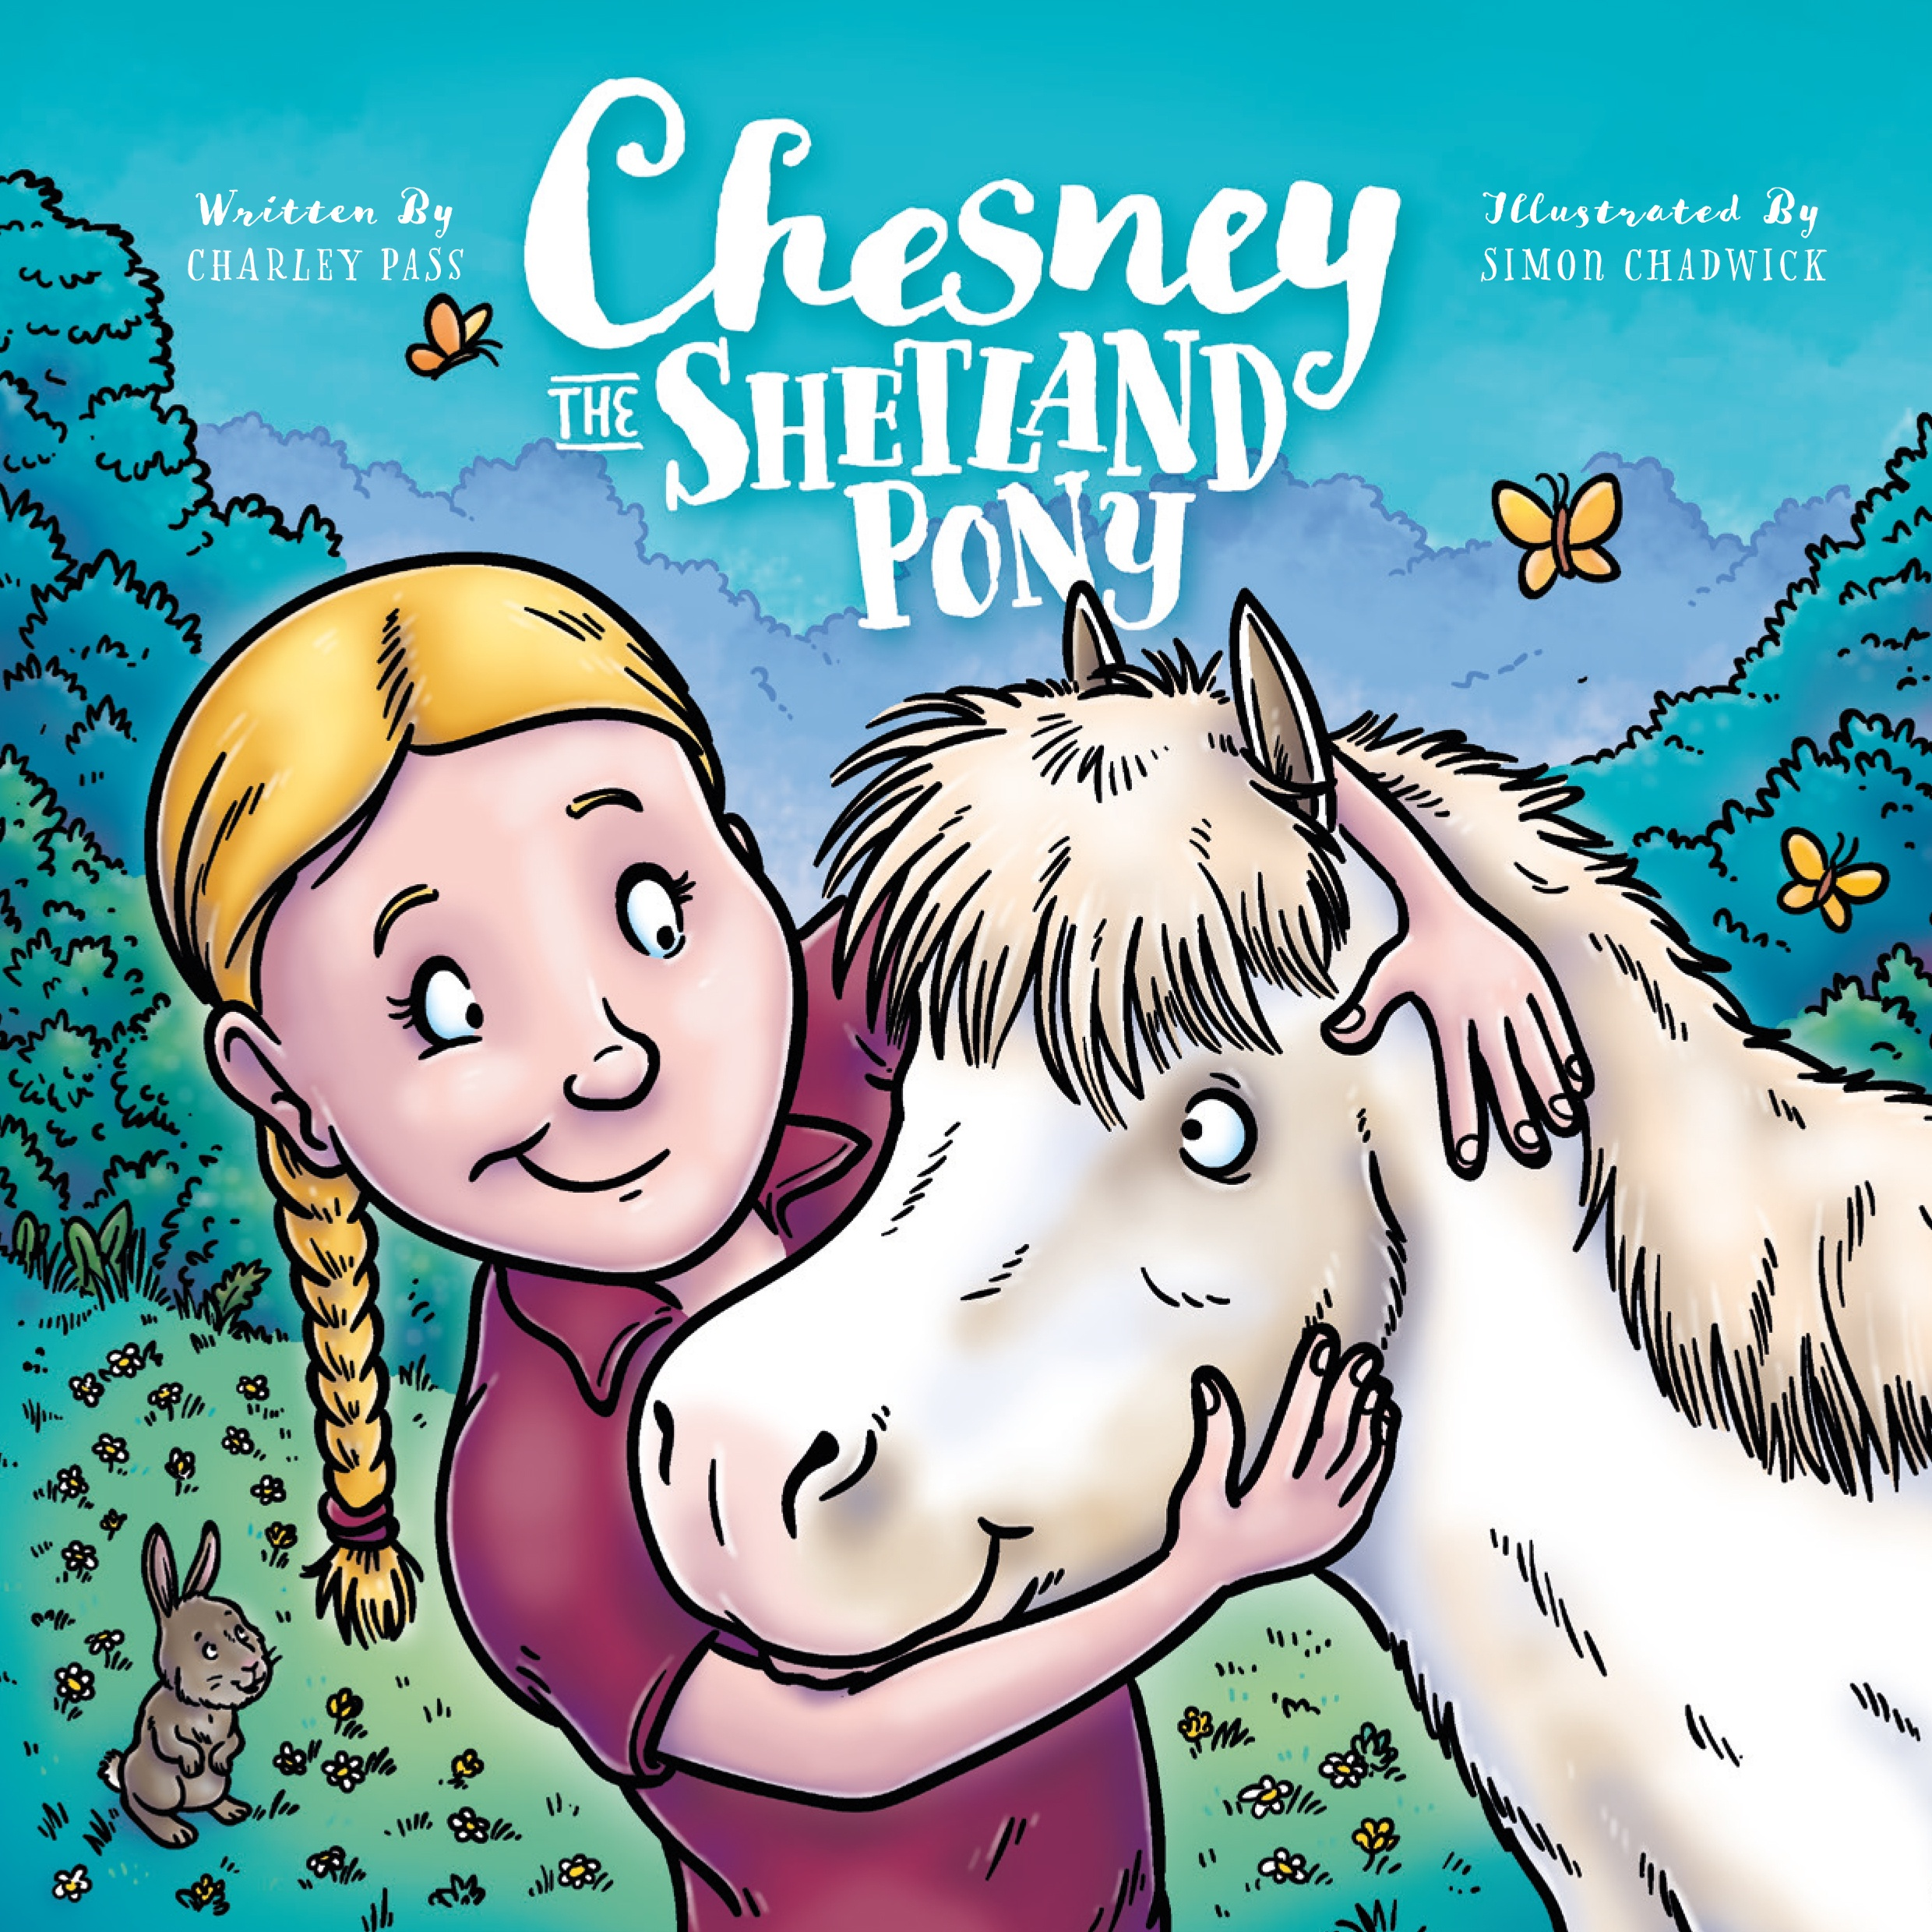 Cover for Chesney The Shetland Pony